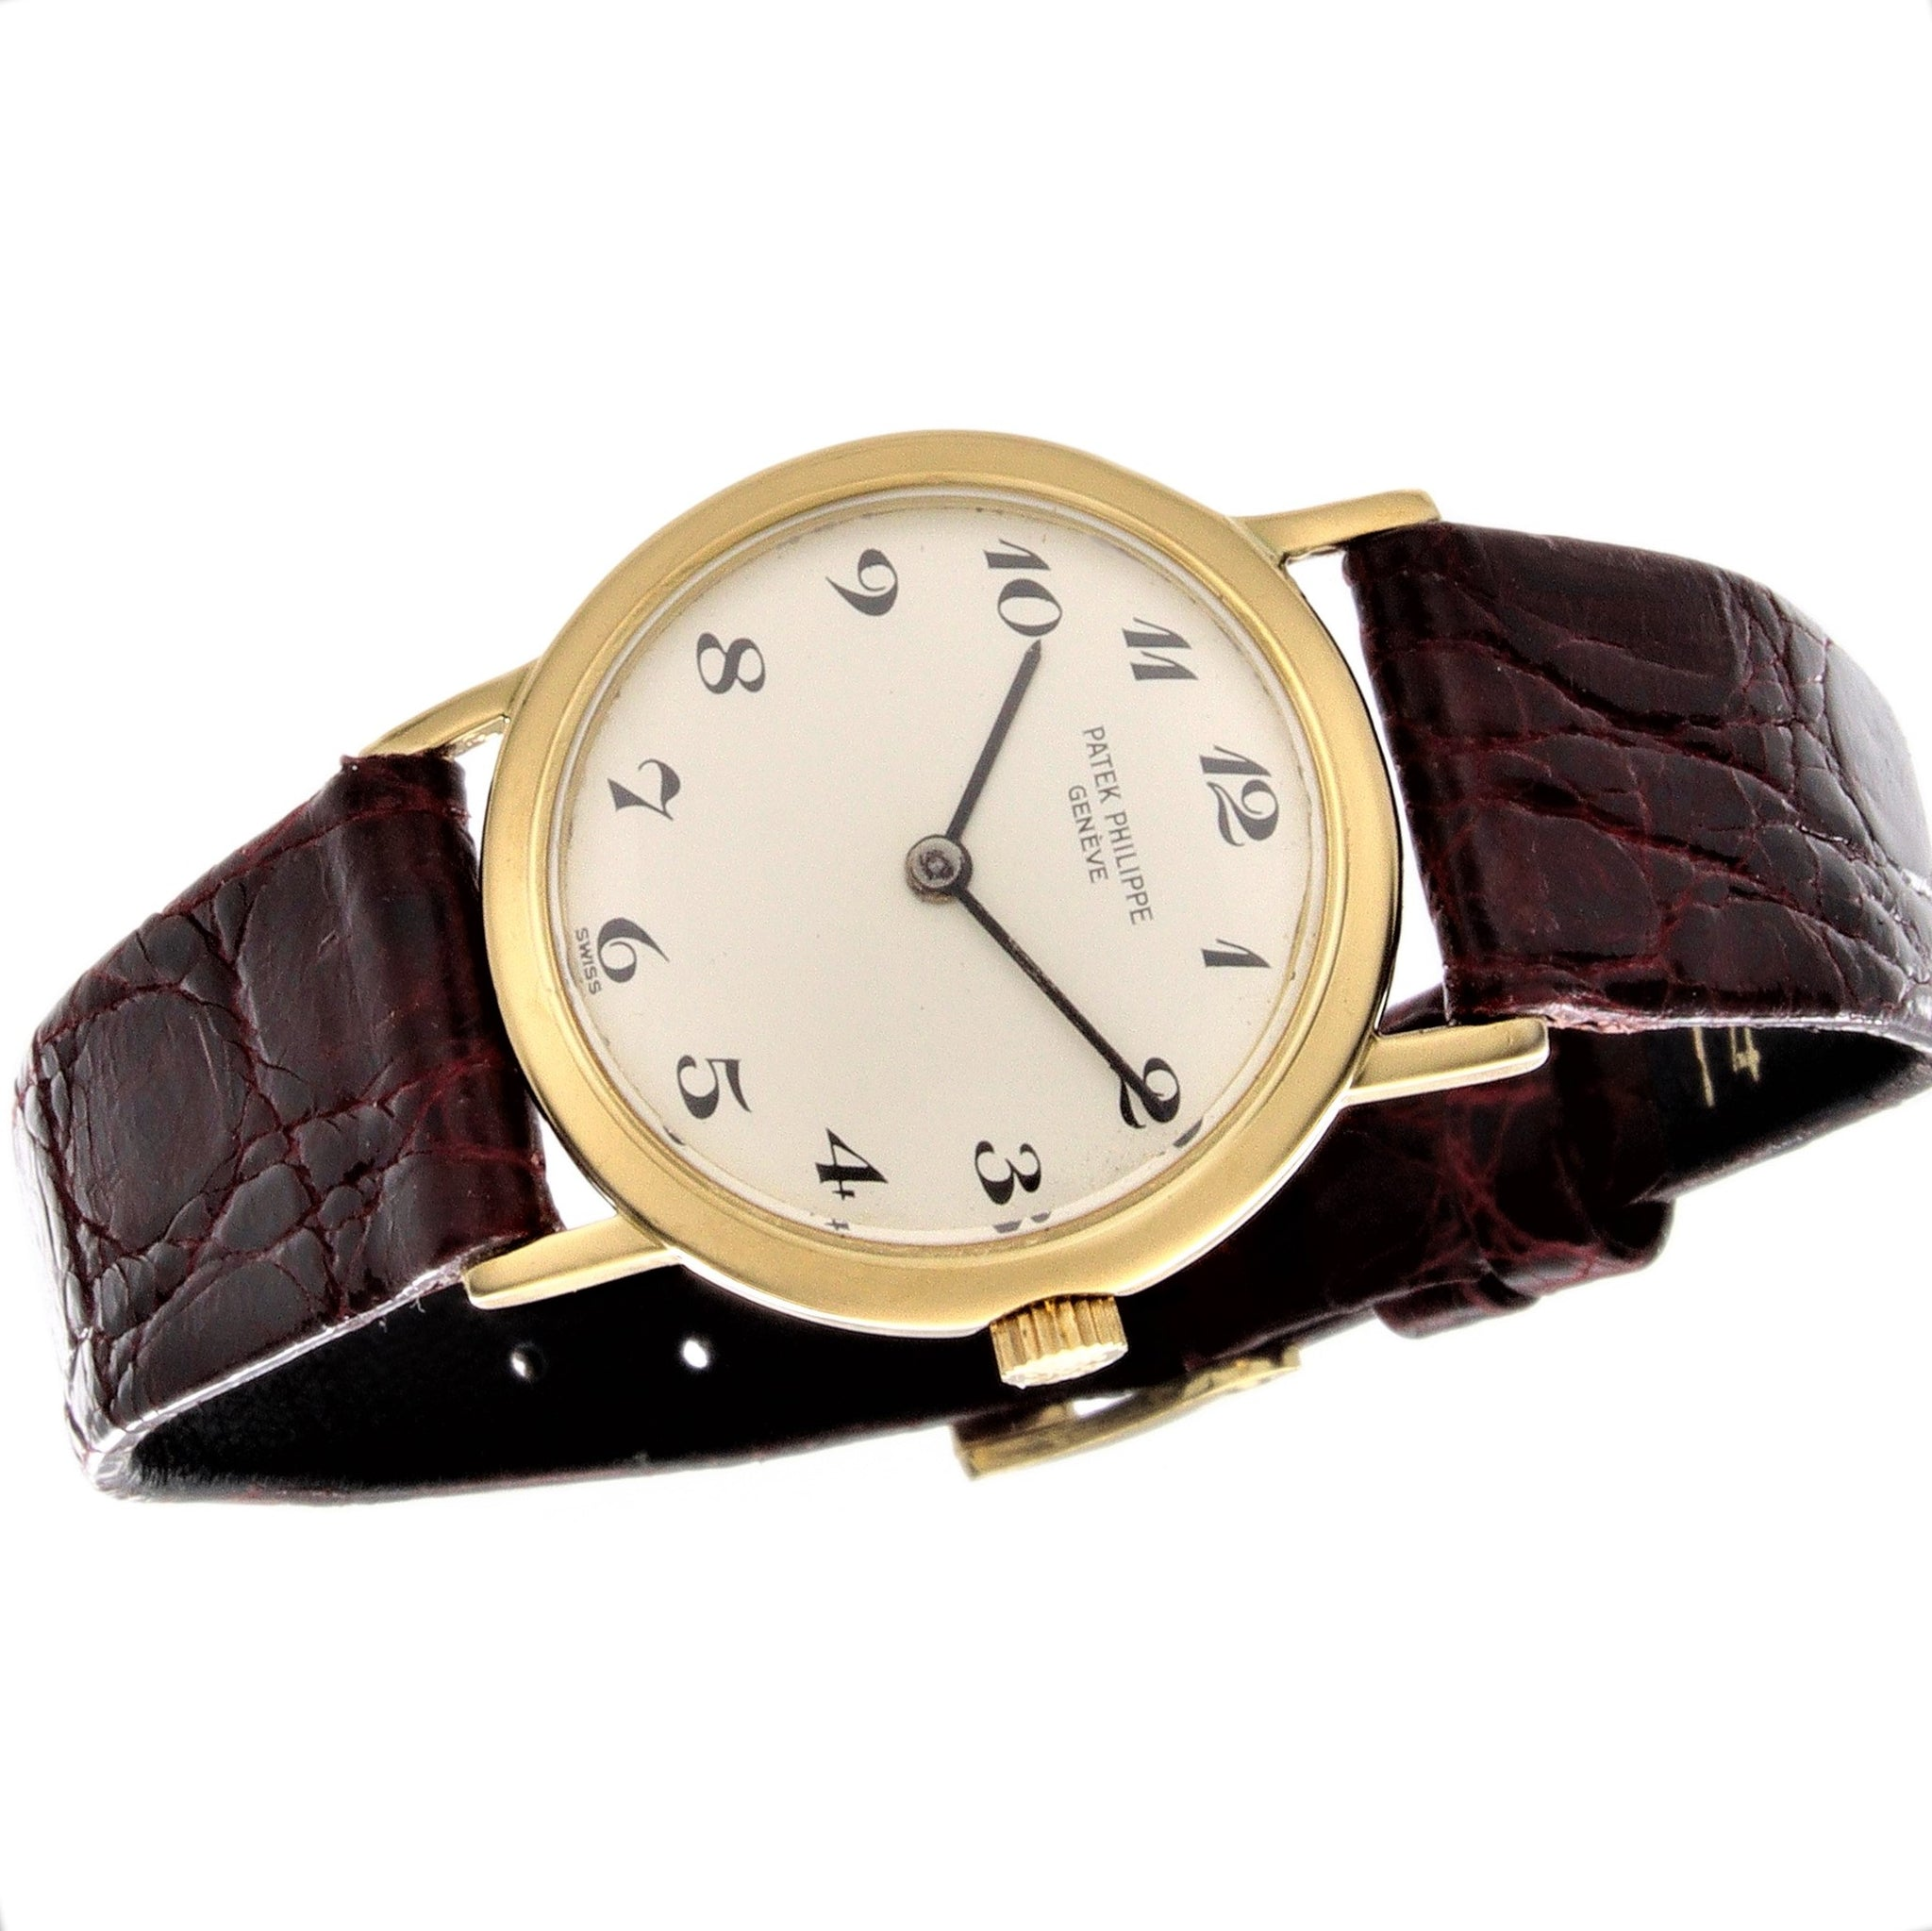 Patek Philippe 4184J Ladies Calatrava Watch 25 mm Breguet Dial Circa 1975